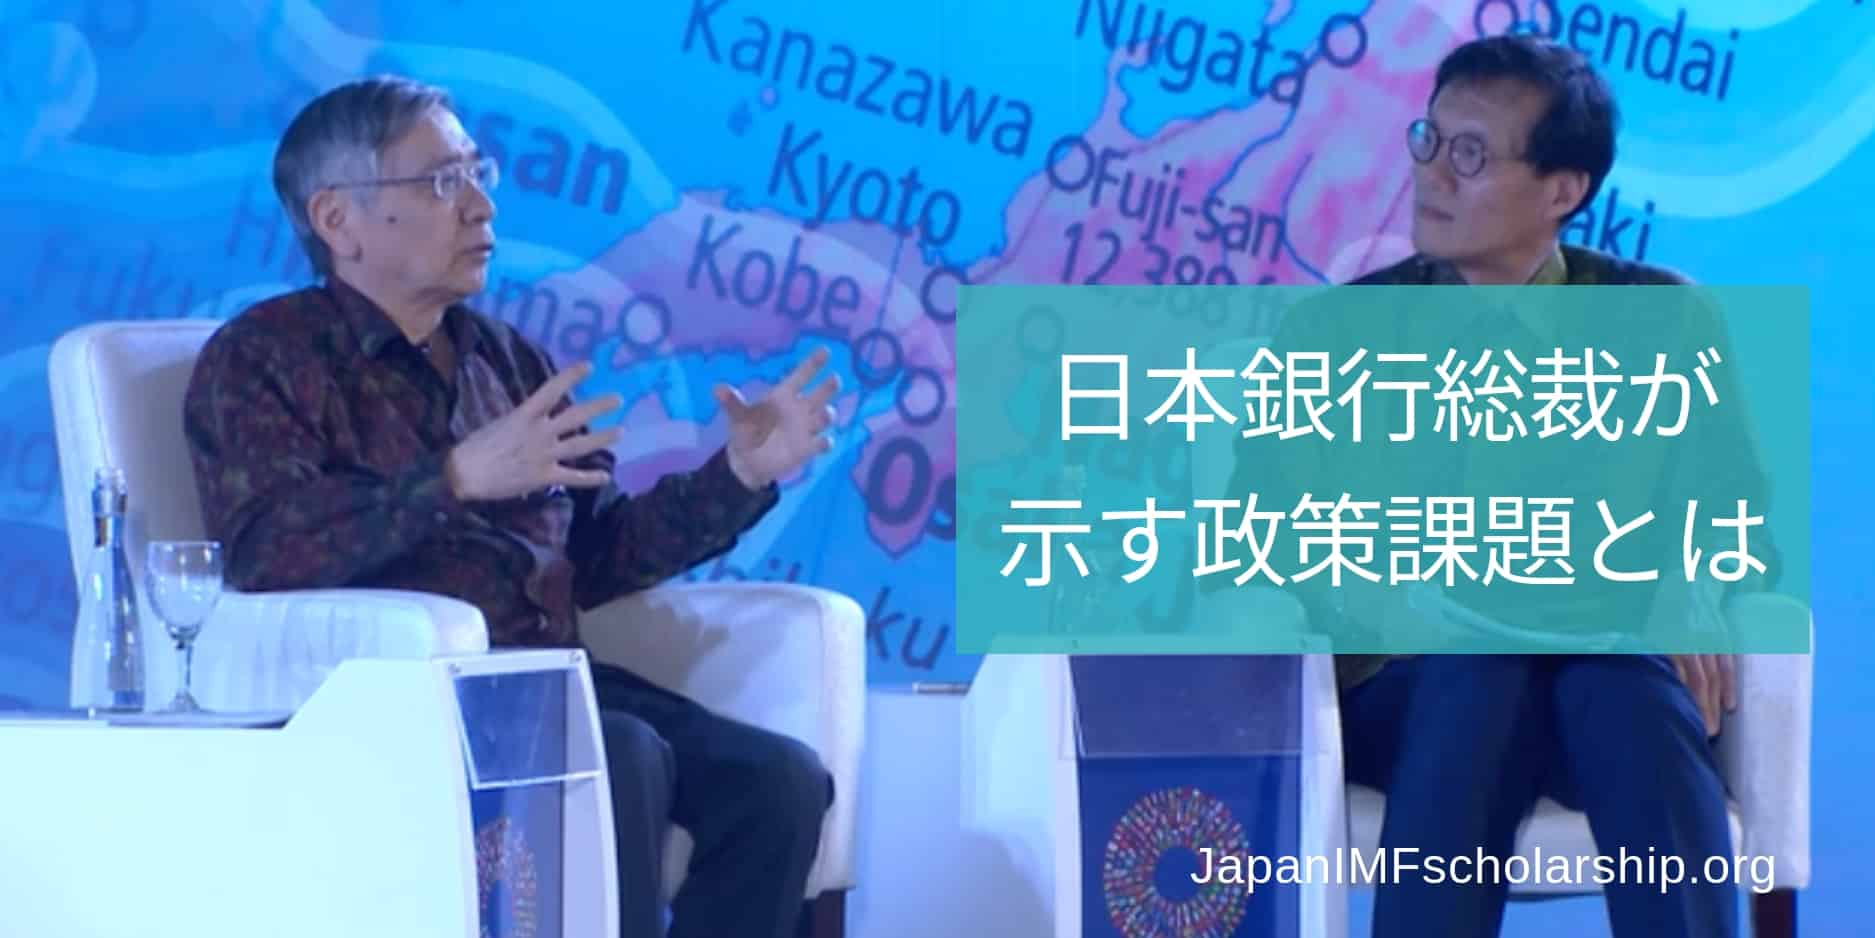 jisp imf video of japan governor talks about tackilng policy challenges in a low inflation environment